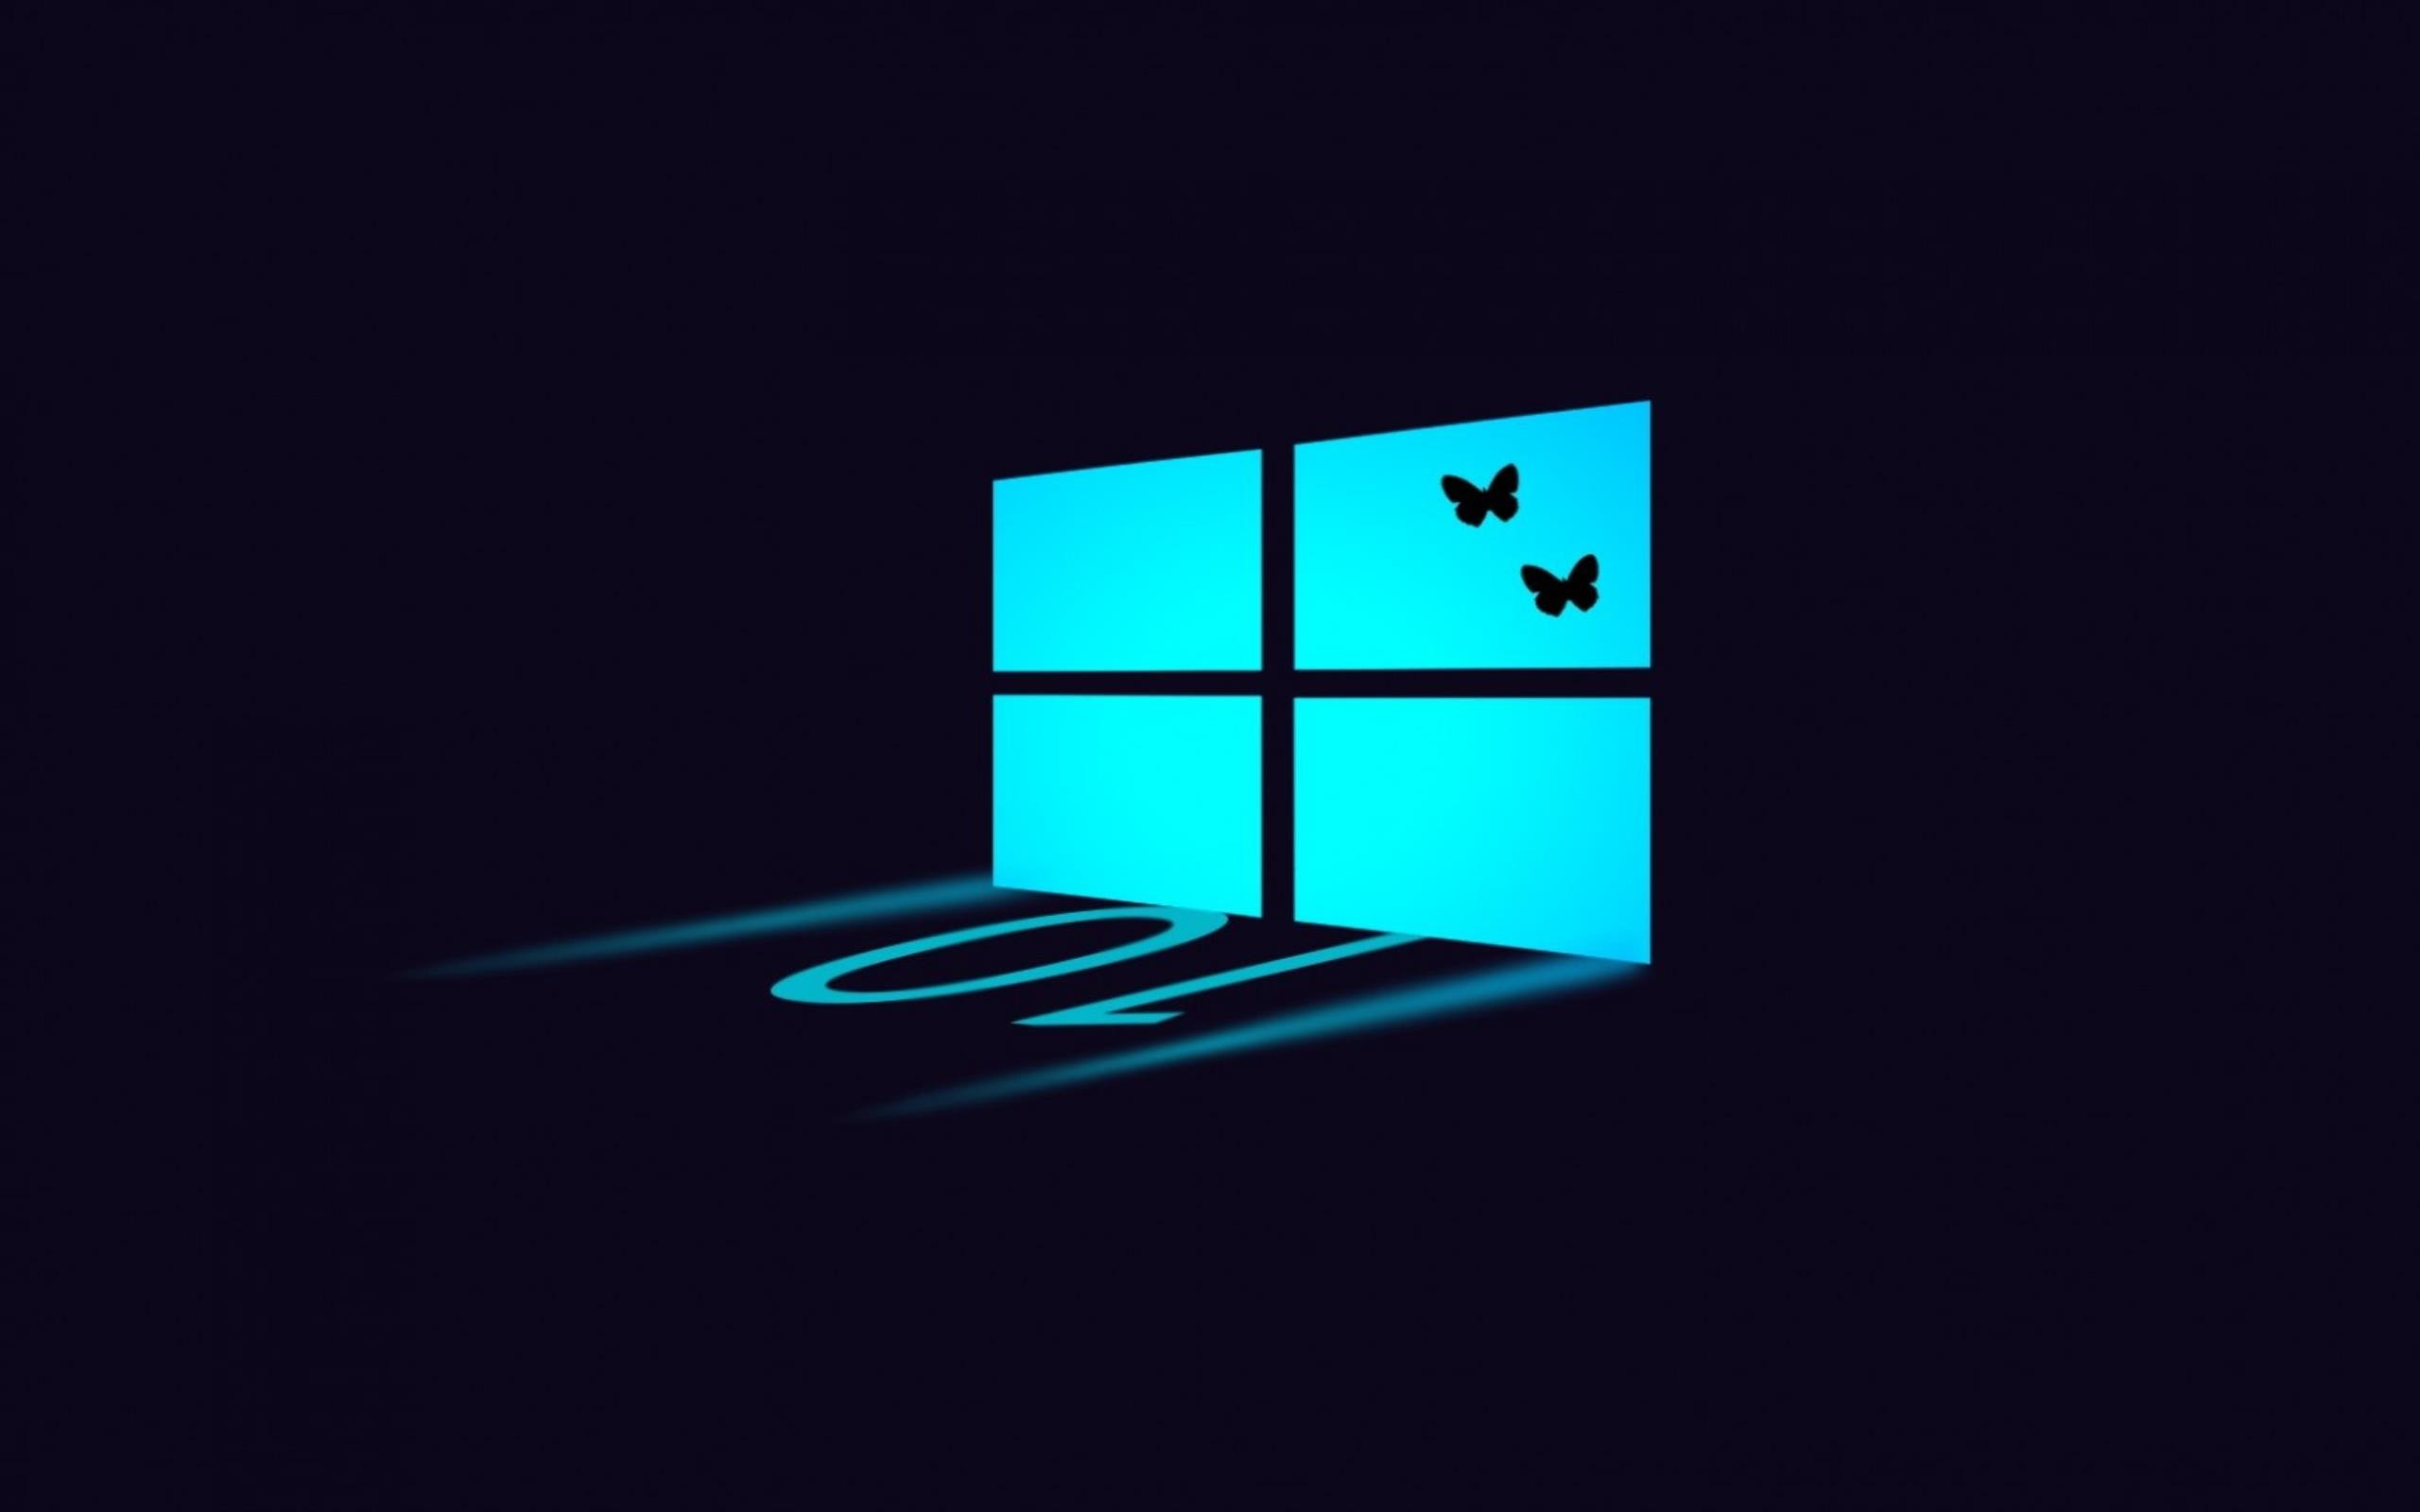 Windows 10 Dual Monitor Wallpaper ·① Download Free